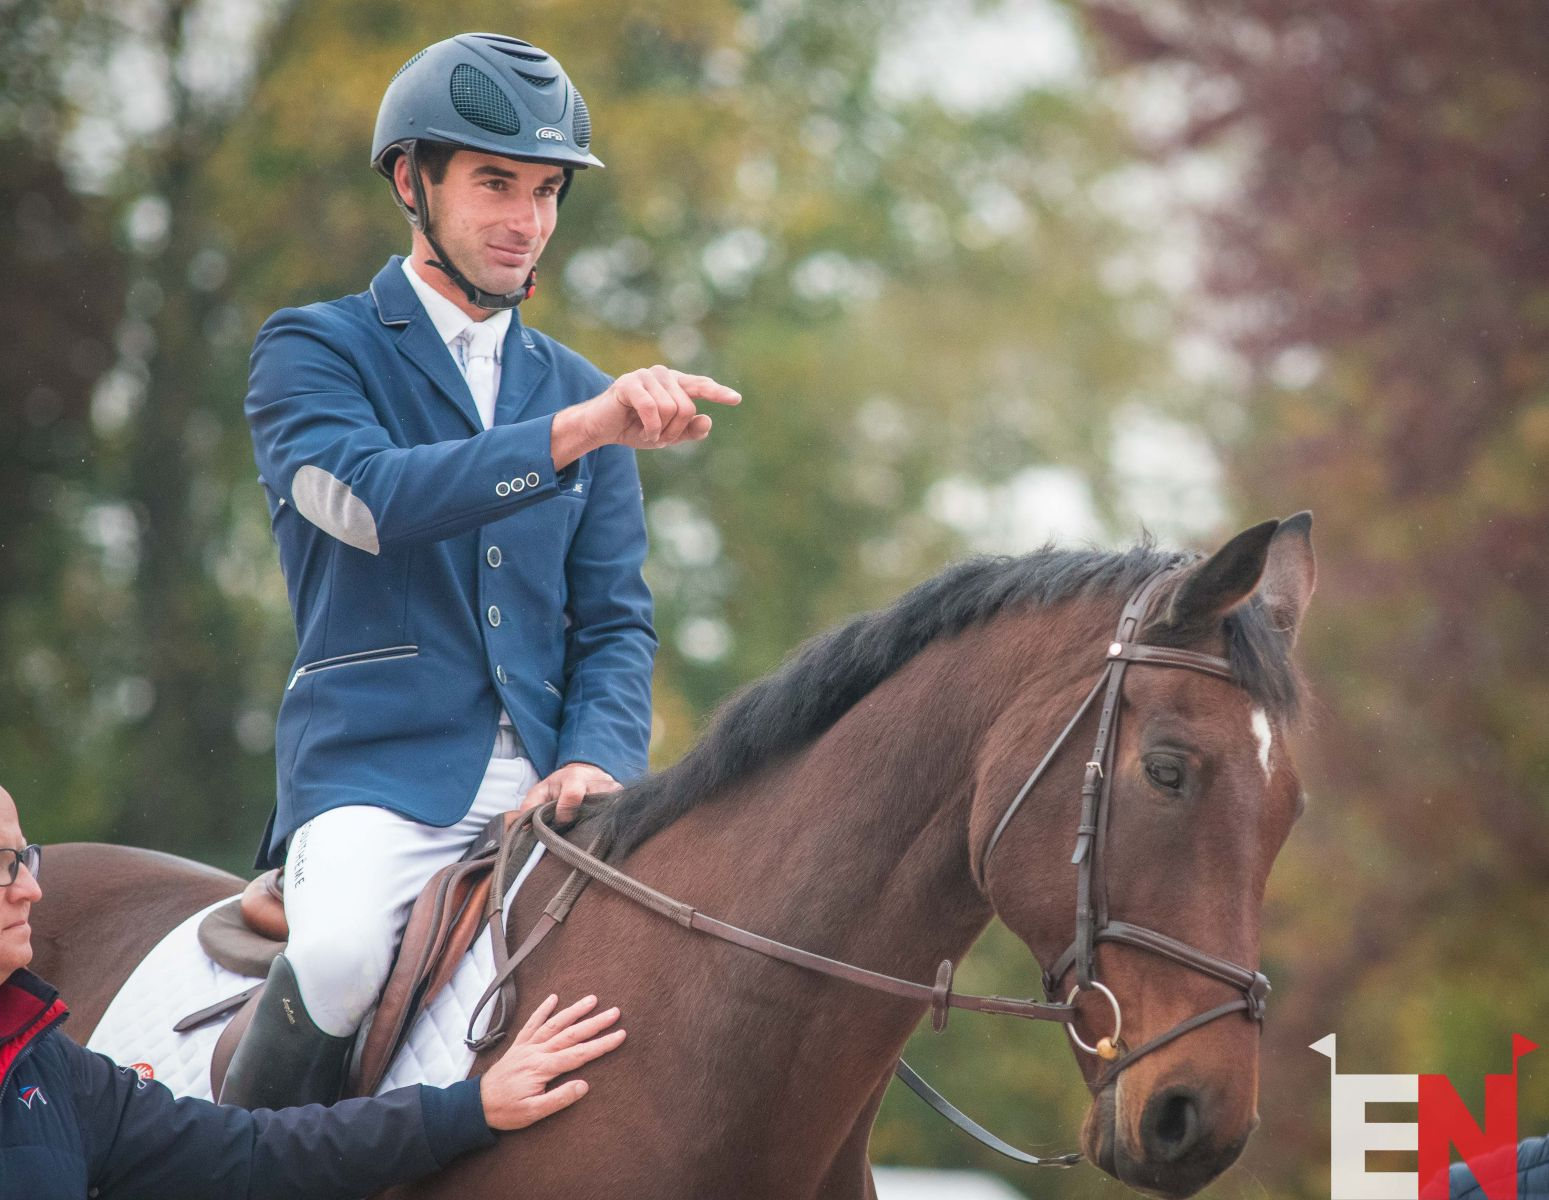 French Eventing Bids Adieu to Olympic Star